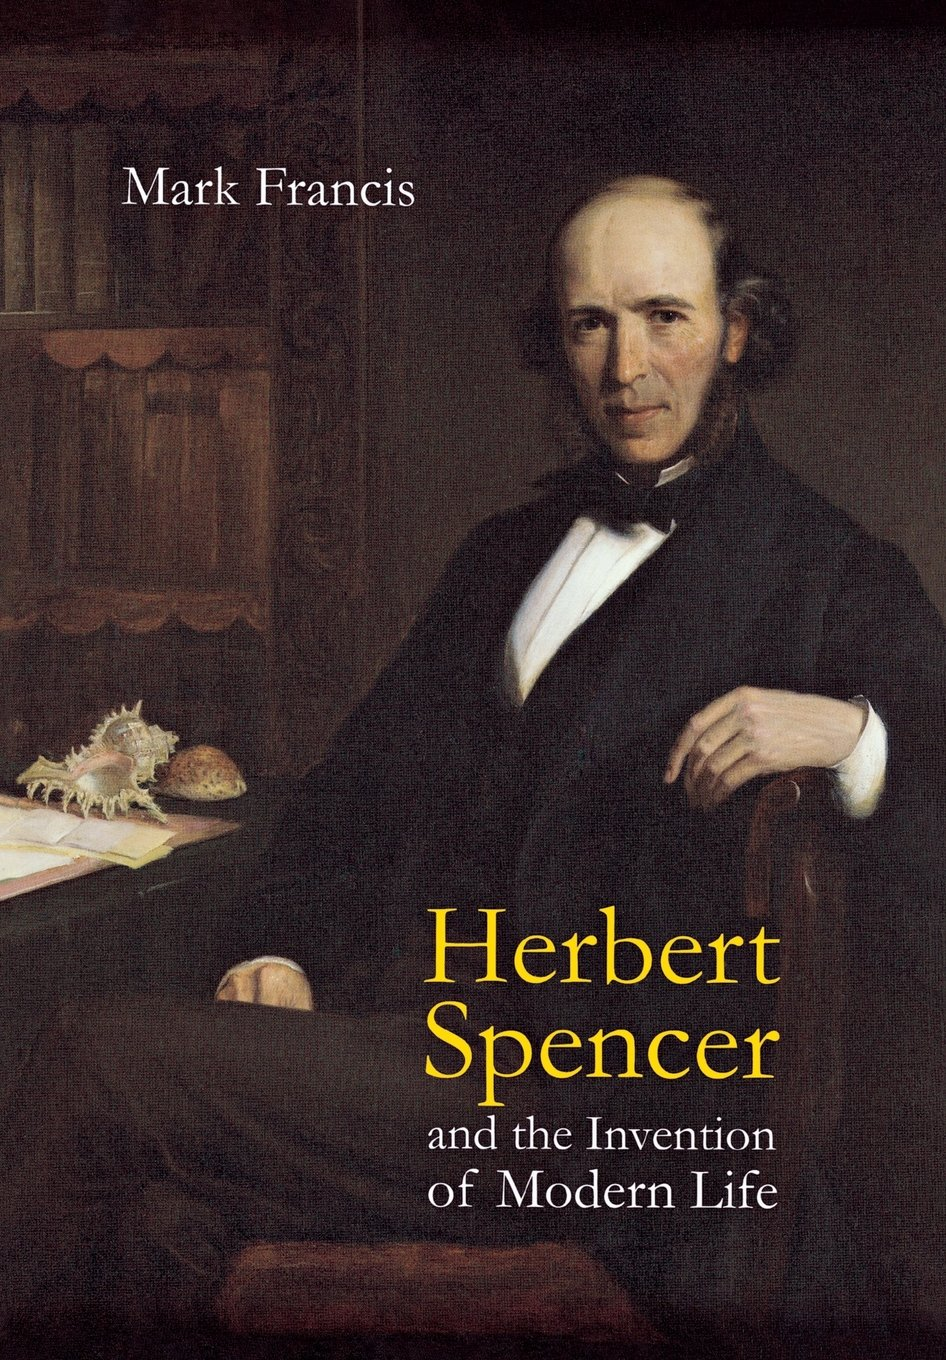 Herbert Spencer and the Invention of Modern Life: Mark Francis:  9780801445903: Amazon.com: Books